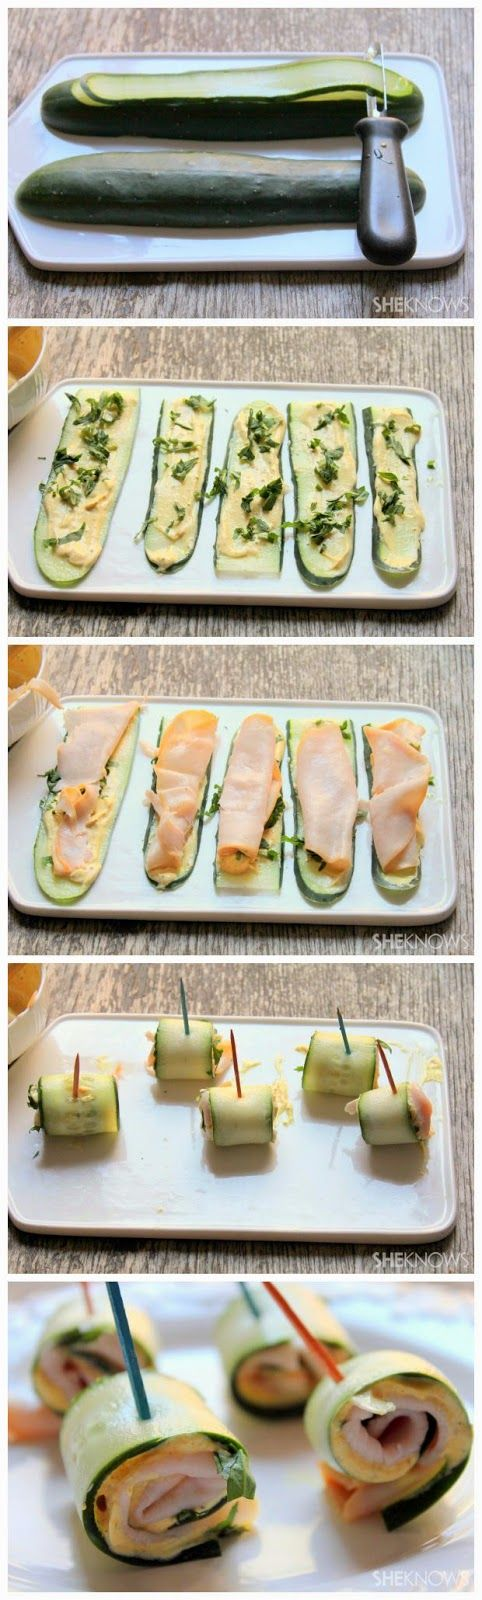 Sick of boring work lunches? Pack these Cucumber roll-ups with hummus and turkey.but Im going to replace it with smoked salmon and cream cheese.